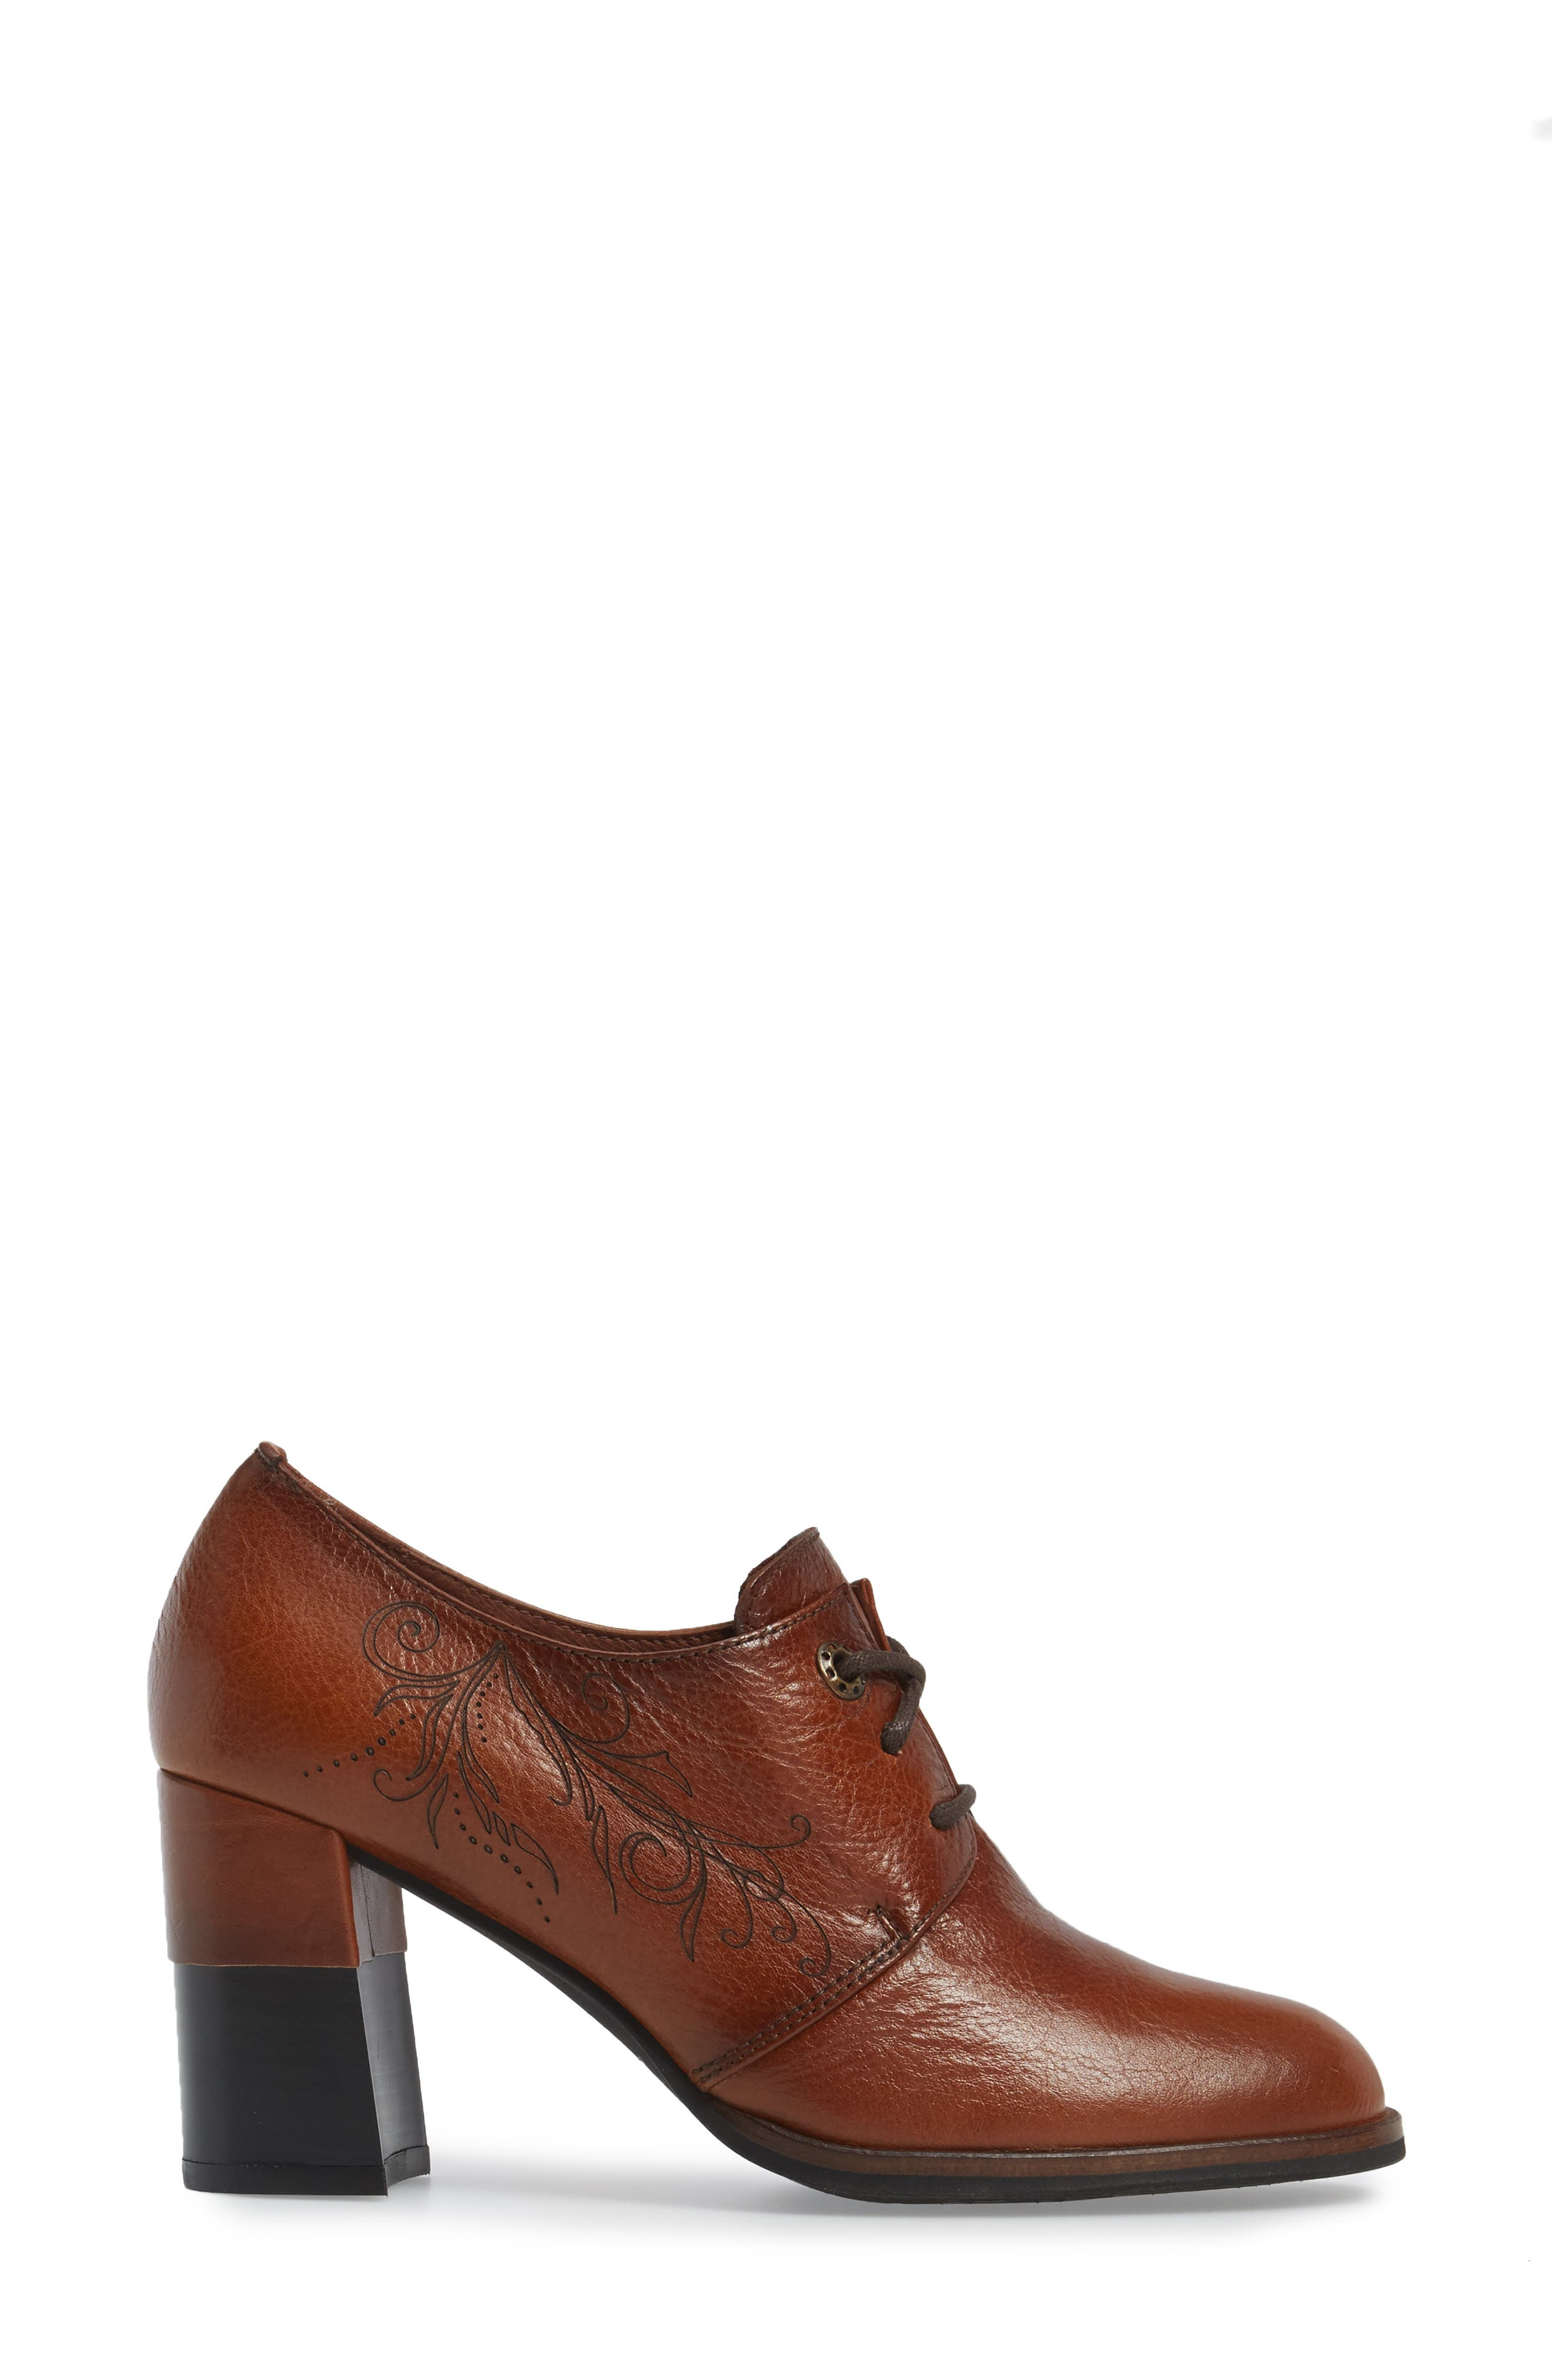 Hayes Lace-Up Pump,                             Alternate thumbnail 3, color,                             CUOIO LEATHER